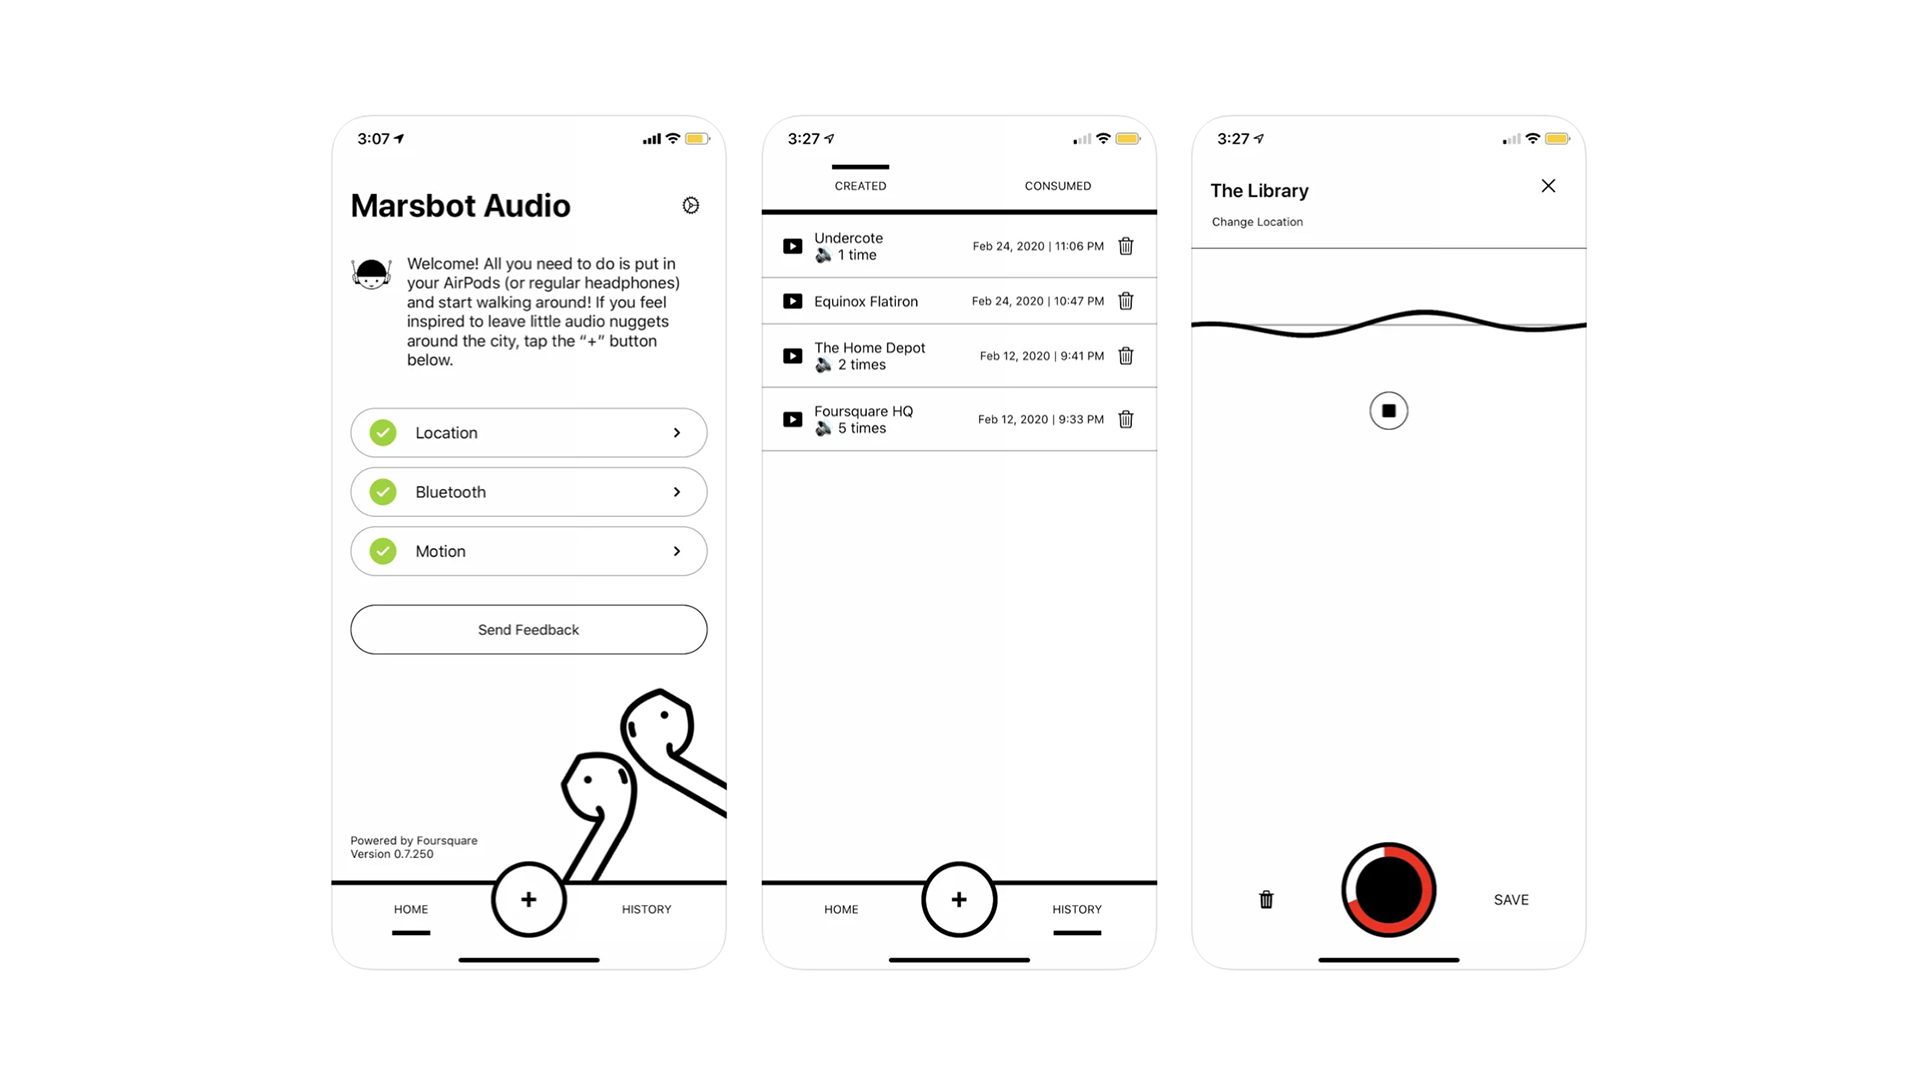 photo of FourSquare launches Marsbot for AirPods, an audio guide app for interesting places image